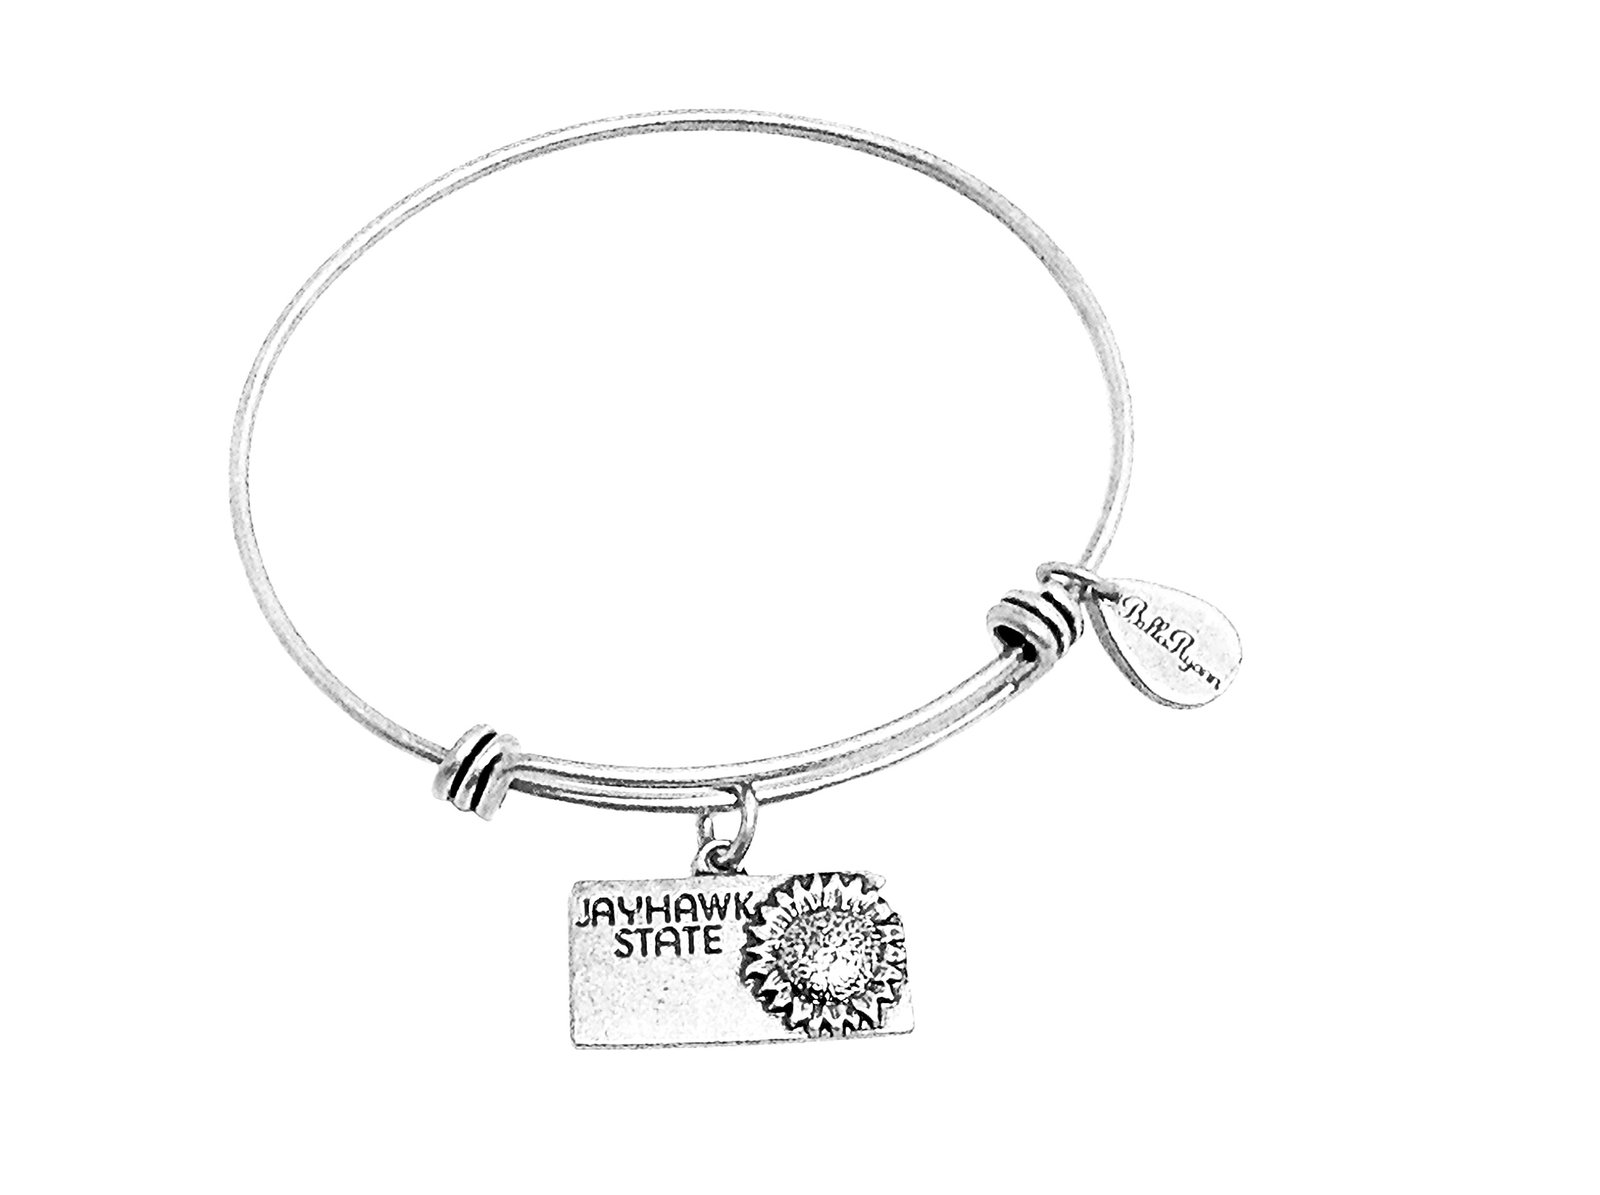 State of Kansas Charm Bangle Bracelet